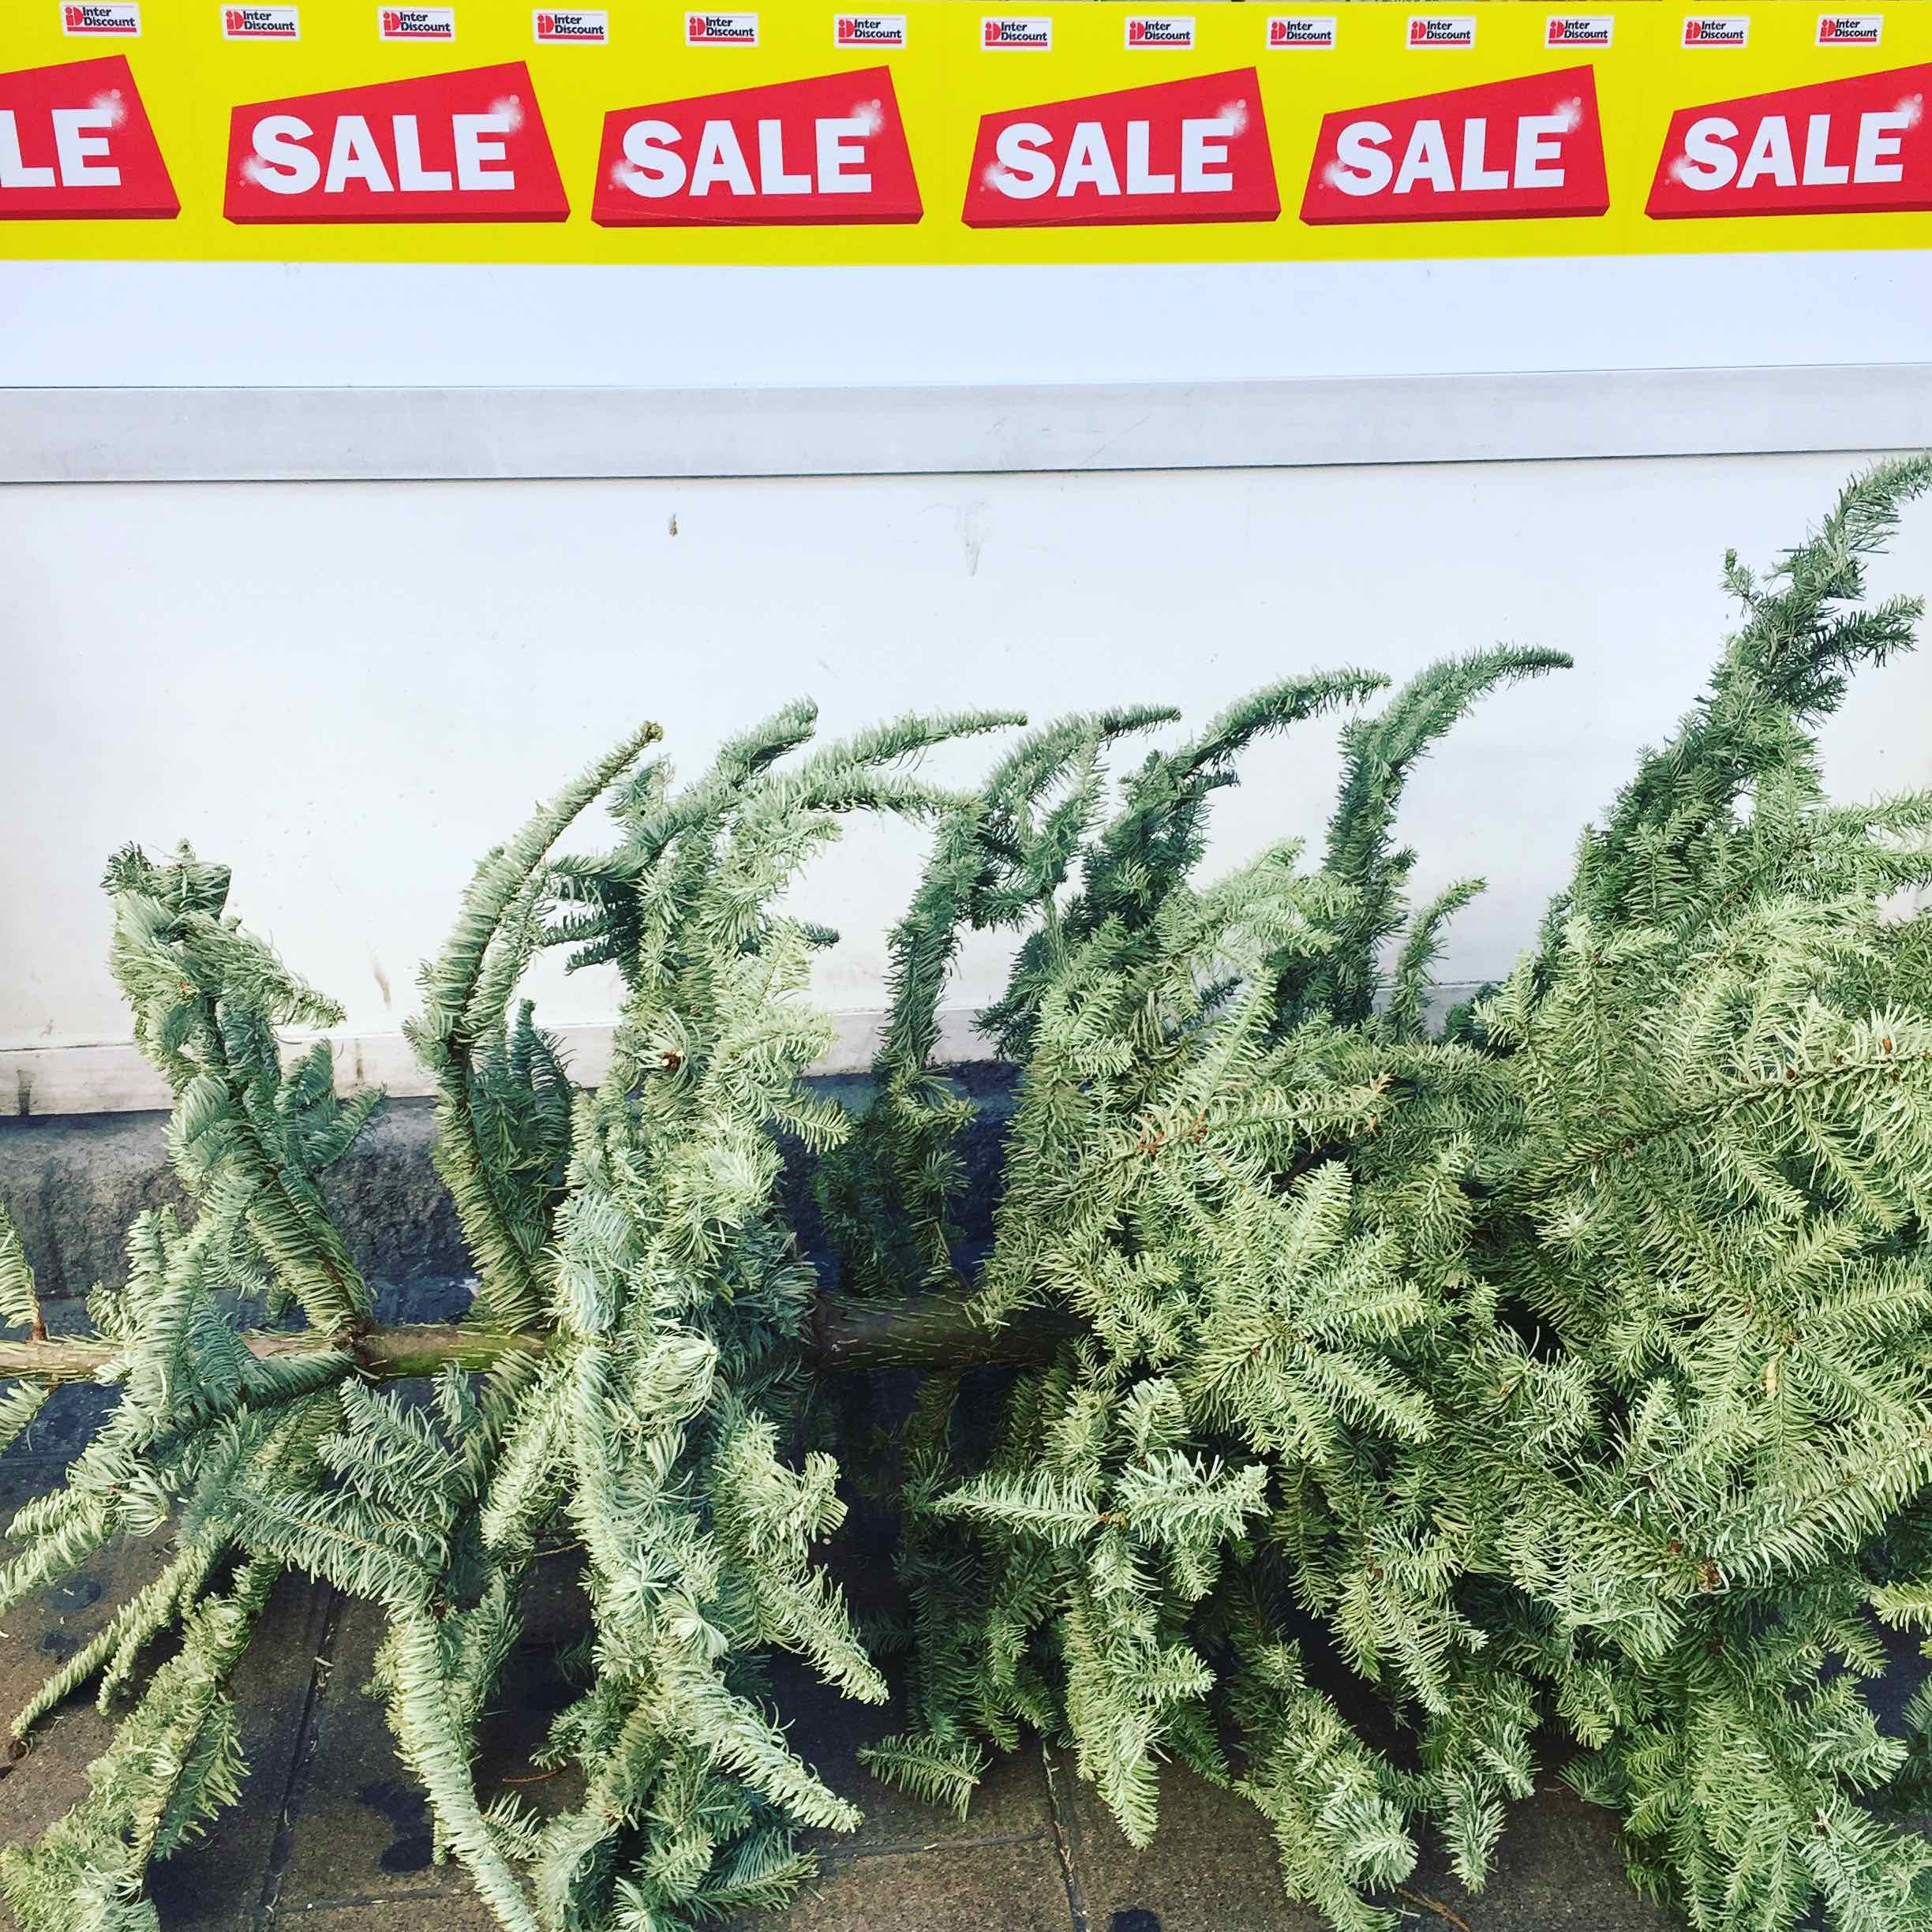 It's the time of sales: everything must disappear! And your beloved xmas tree first, to make some space for the new plasma screen you gonna buy 50% of the price. Priorities my friends!